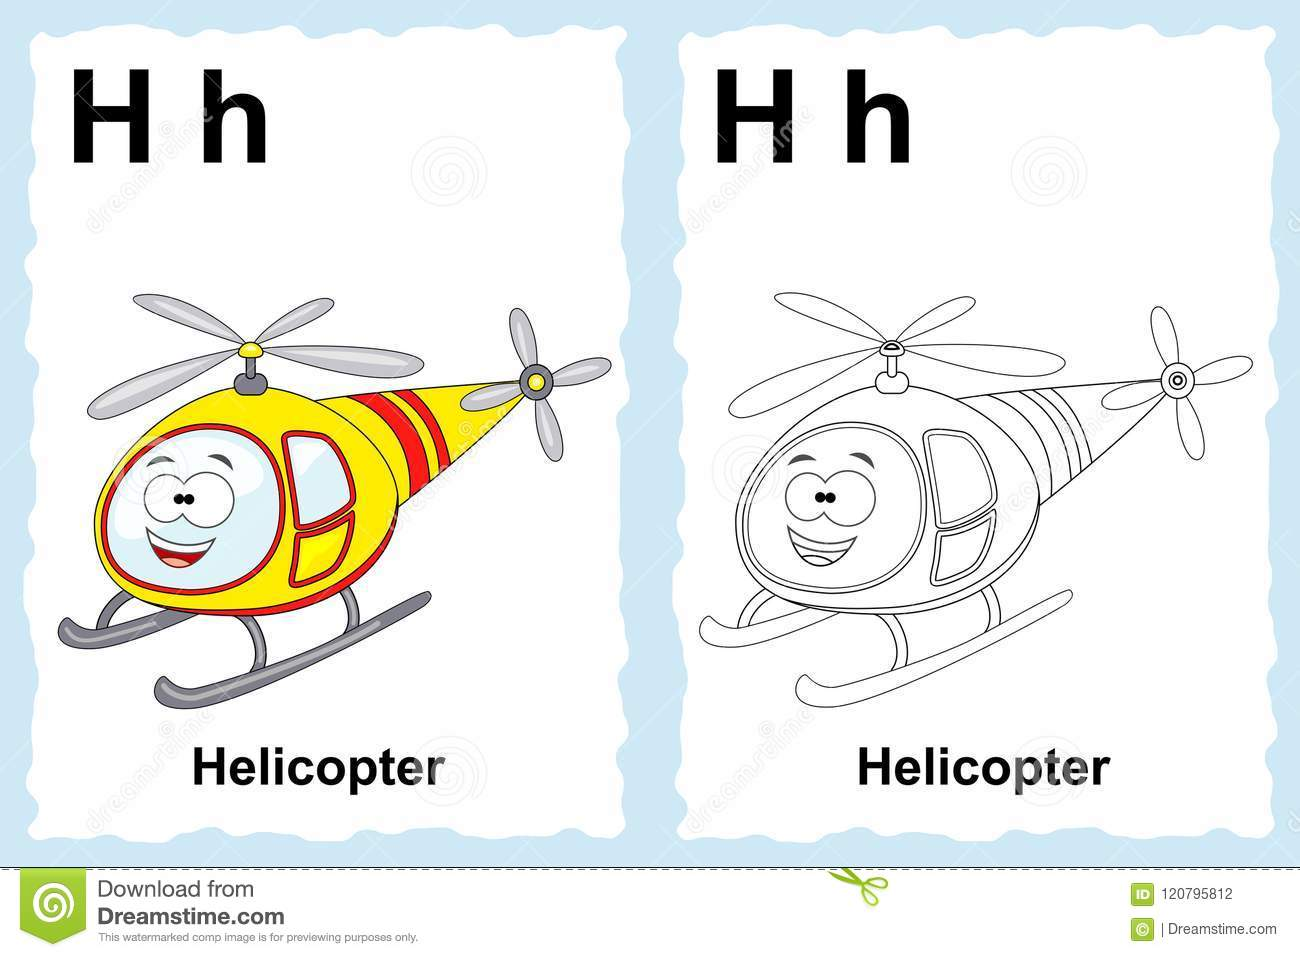 Alphabet coloring book page with outline clip art to color. Letter H. Helicopter. Vector vehicles.